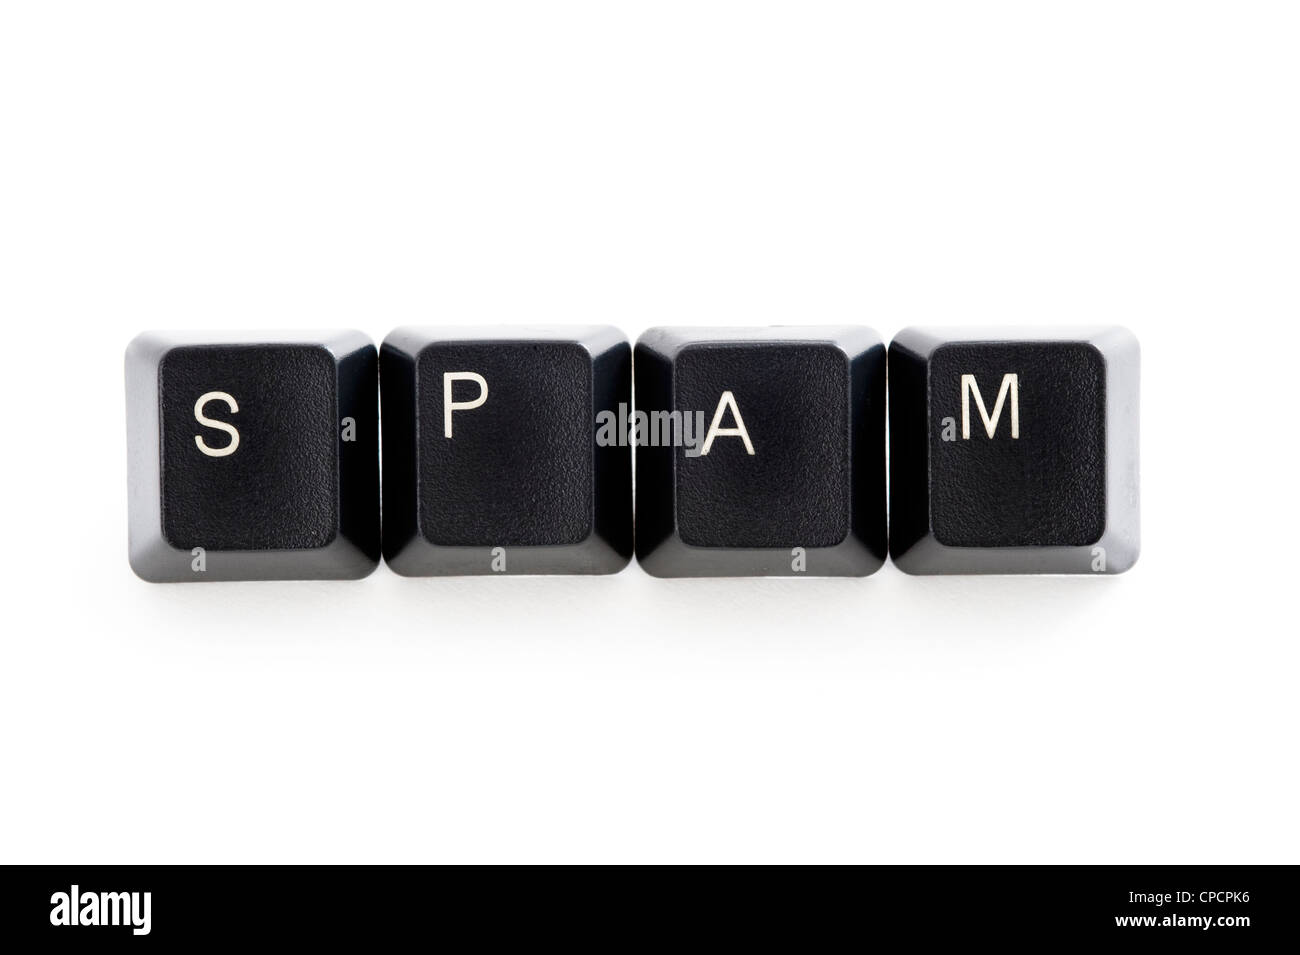 computer keys spelling the word spam on white background - Stock Image